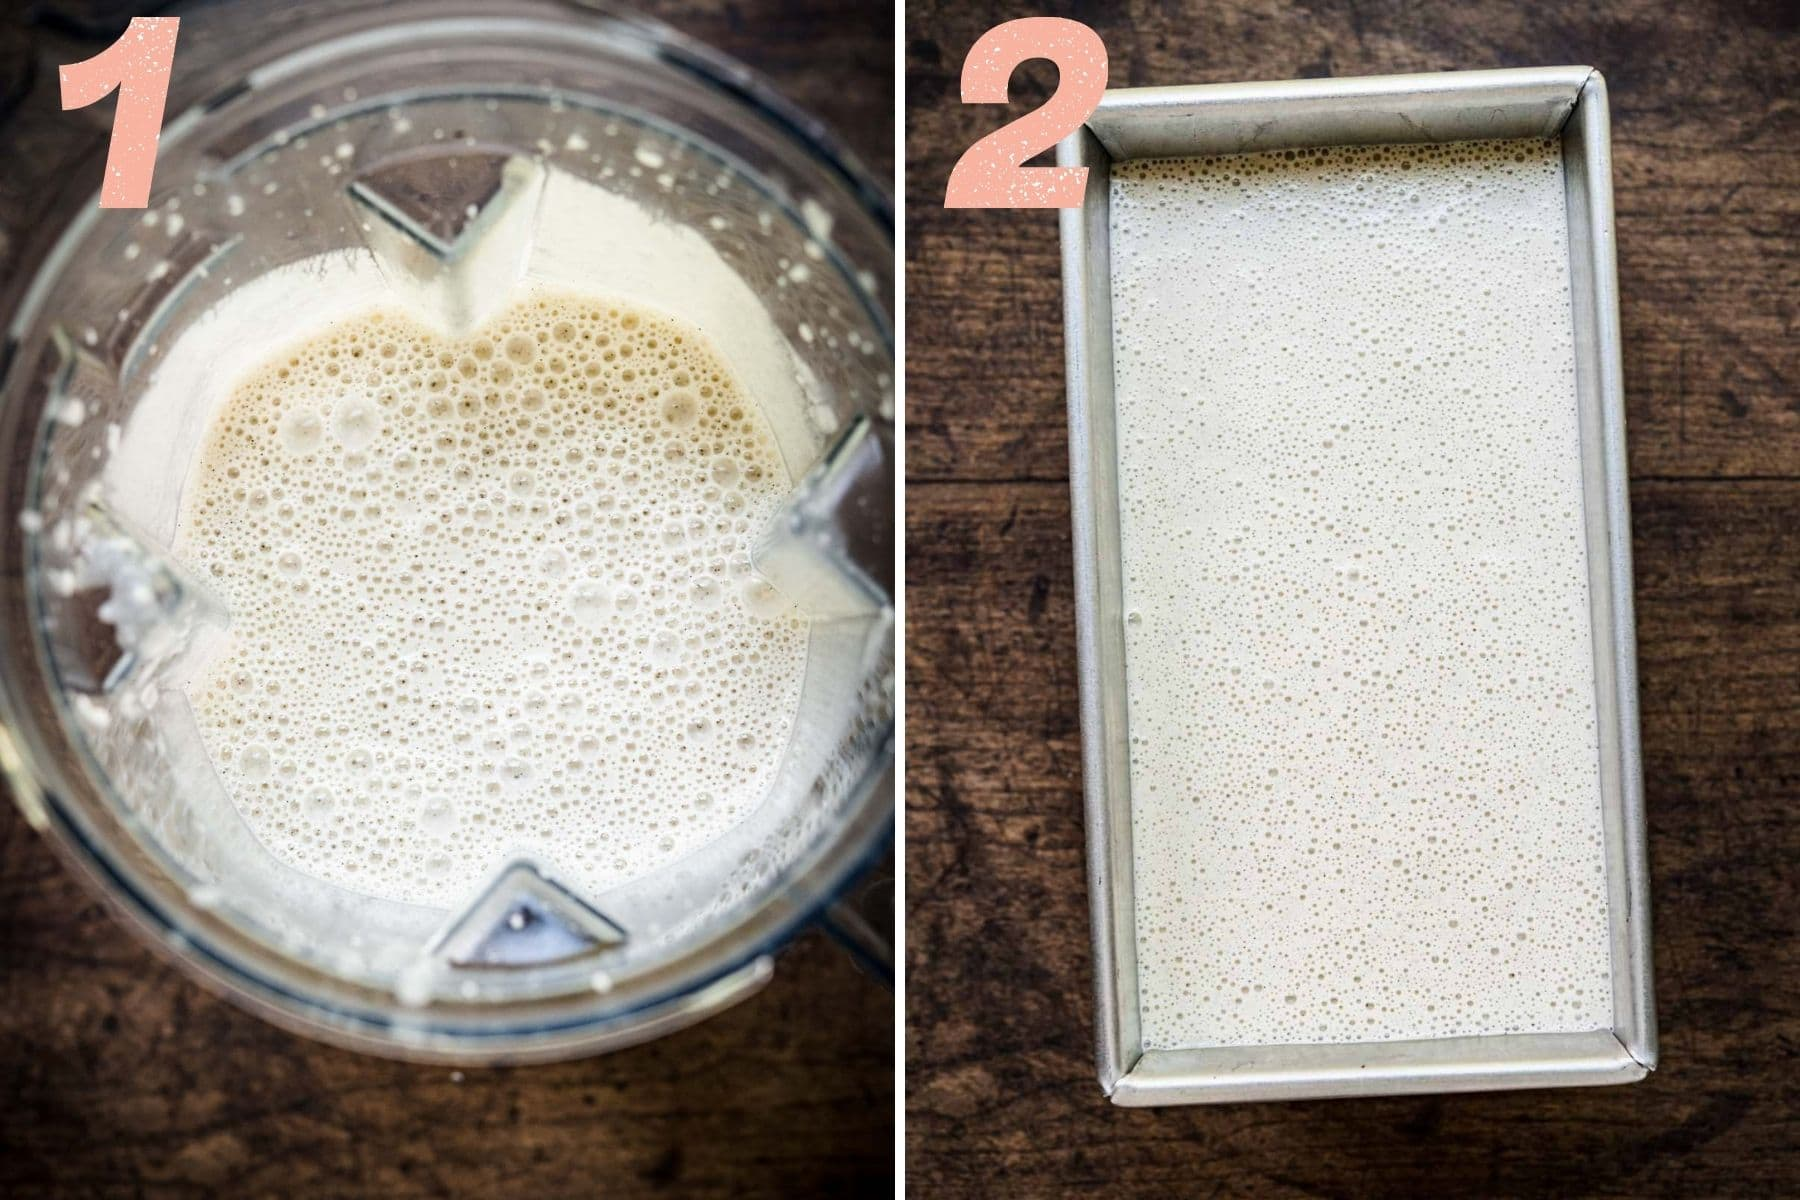 On the left: ingredients in blender after blending. On the right: blended mixture in a pan before freezing.